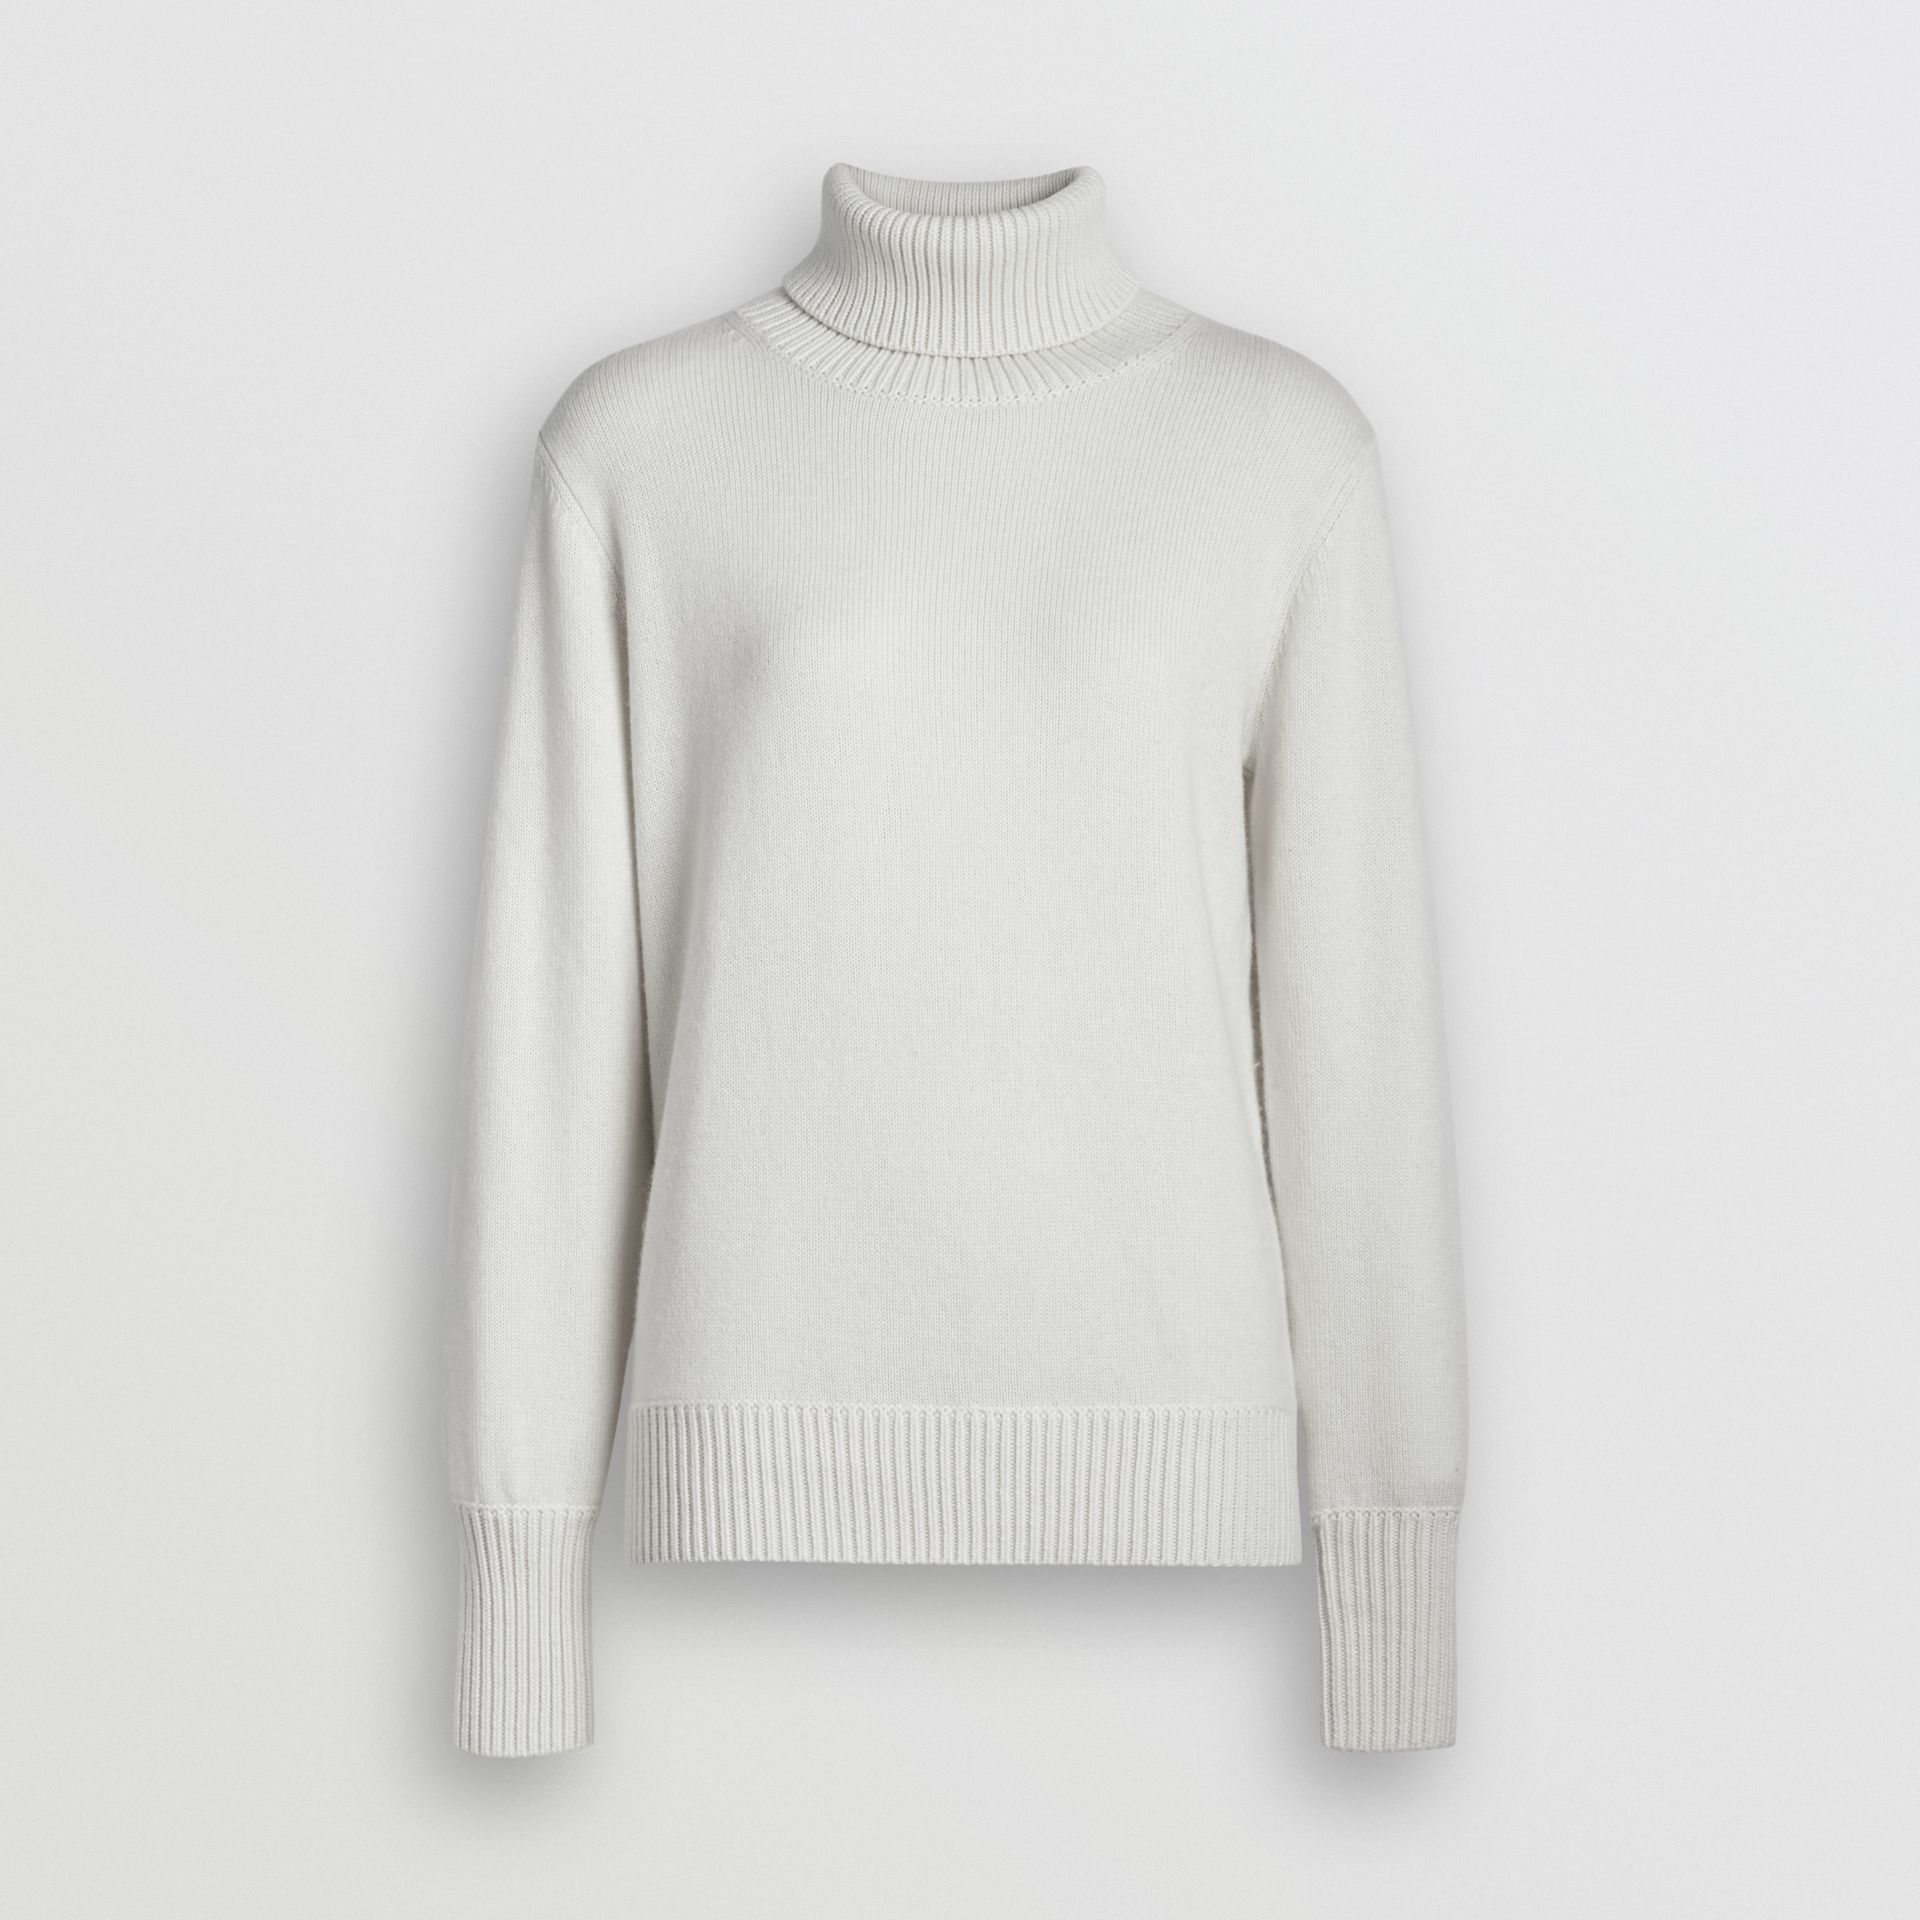 Embroidered Crest Cashmere Roll-neck Sweater in White - Women | Burberry Australia - gallery image 3